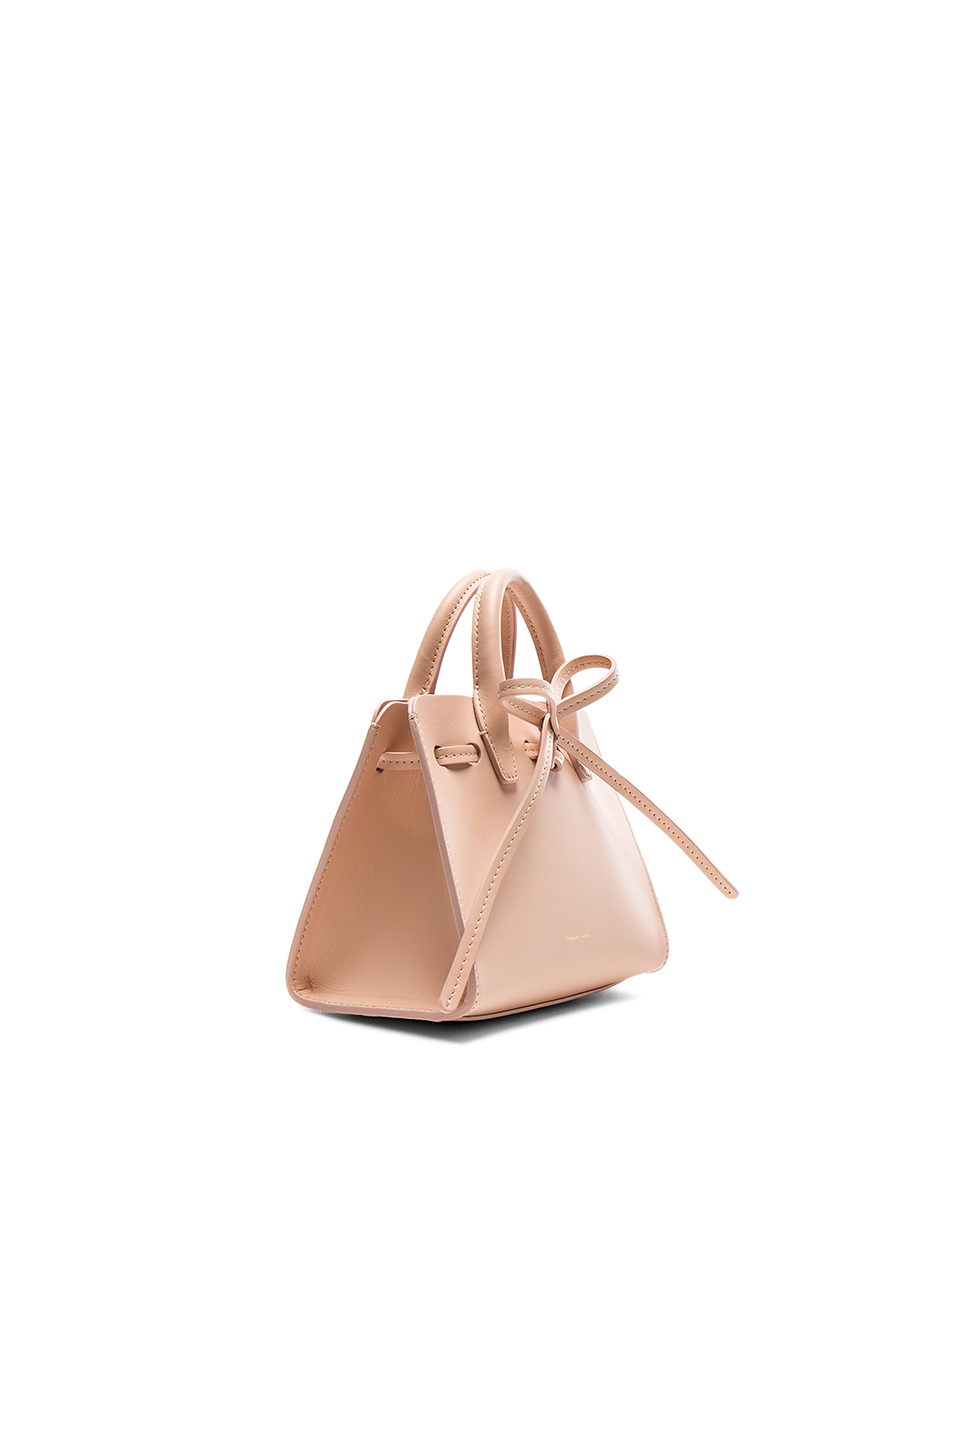 d050c63eb9f1e Buy Original Mansur Gavriel Mini Sun Bag at Indonesia